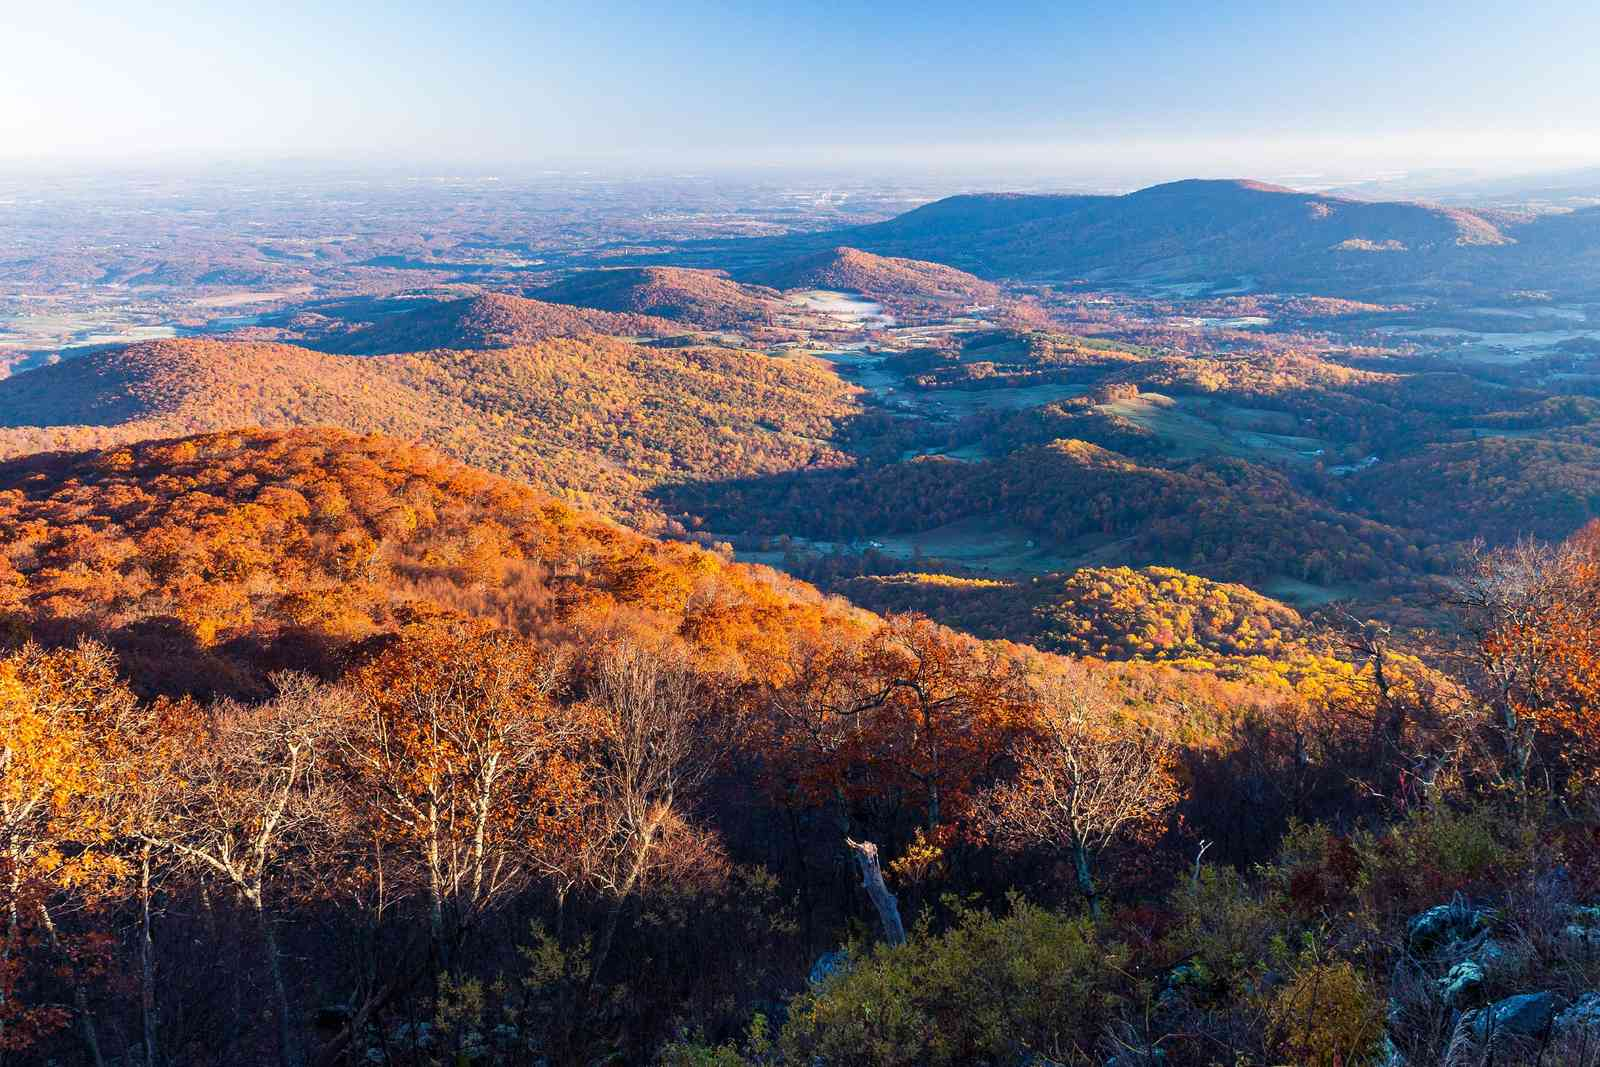 The view from Skyline Drive, Shenandoah National Park, Virginia (Shutterstock)